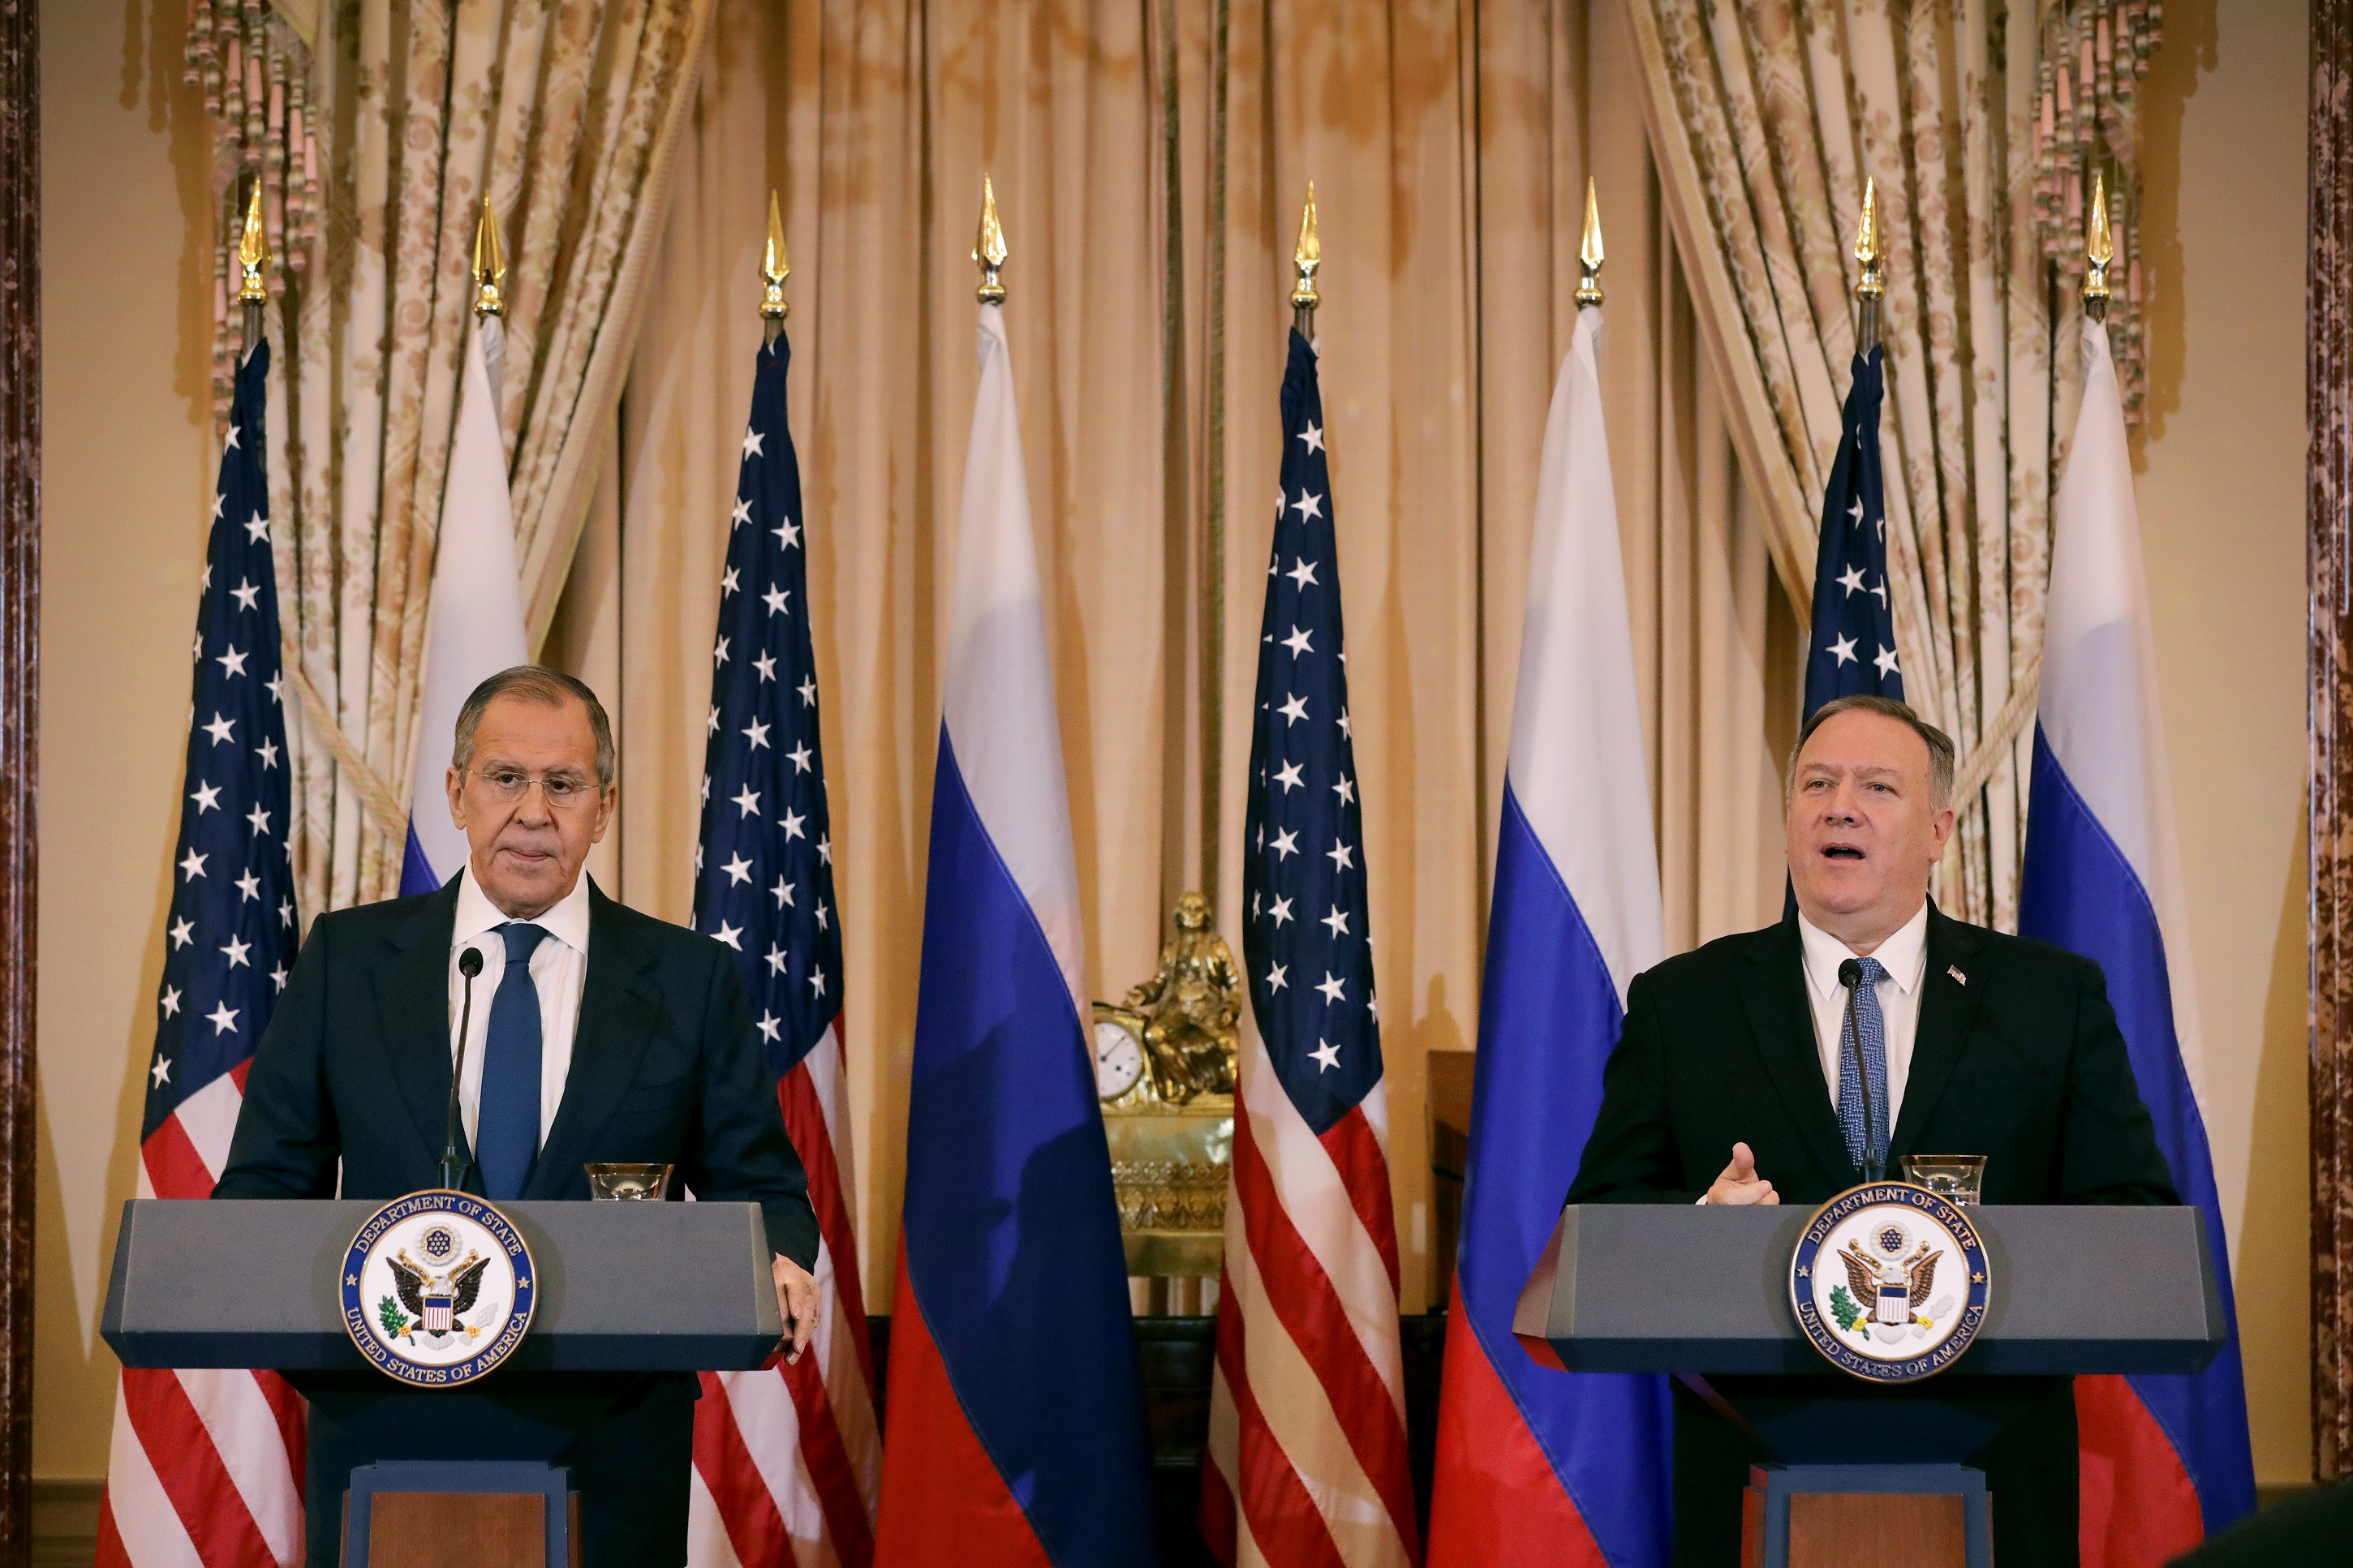 Pompeo Tells Russian Official: 'Interference in Our Domestic Affairs' Is 'Unacceptable'